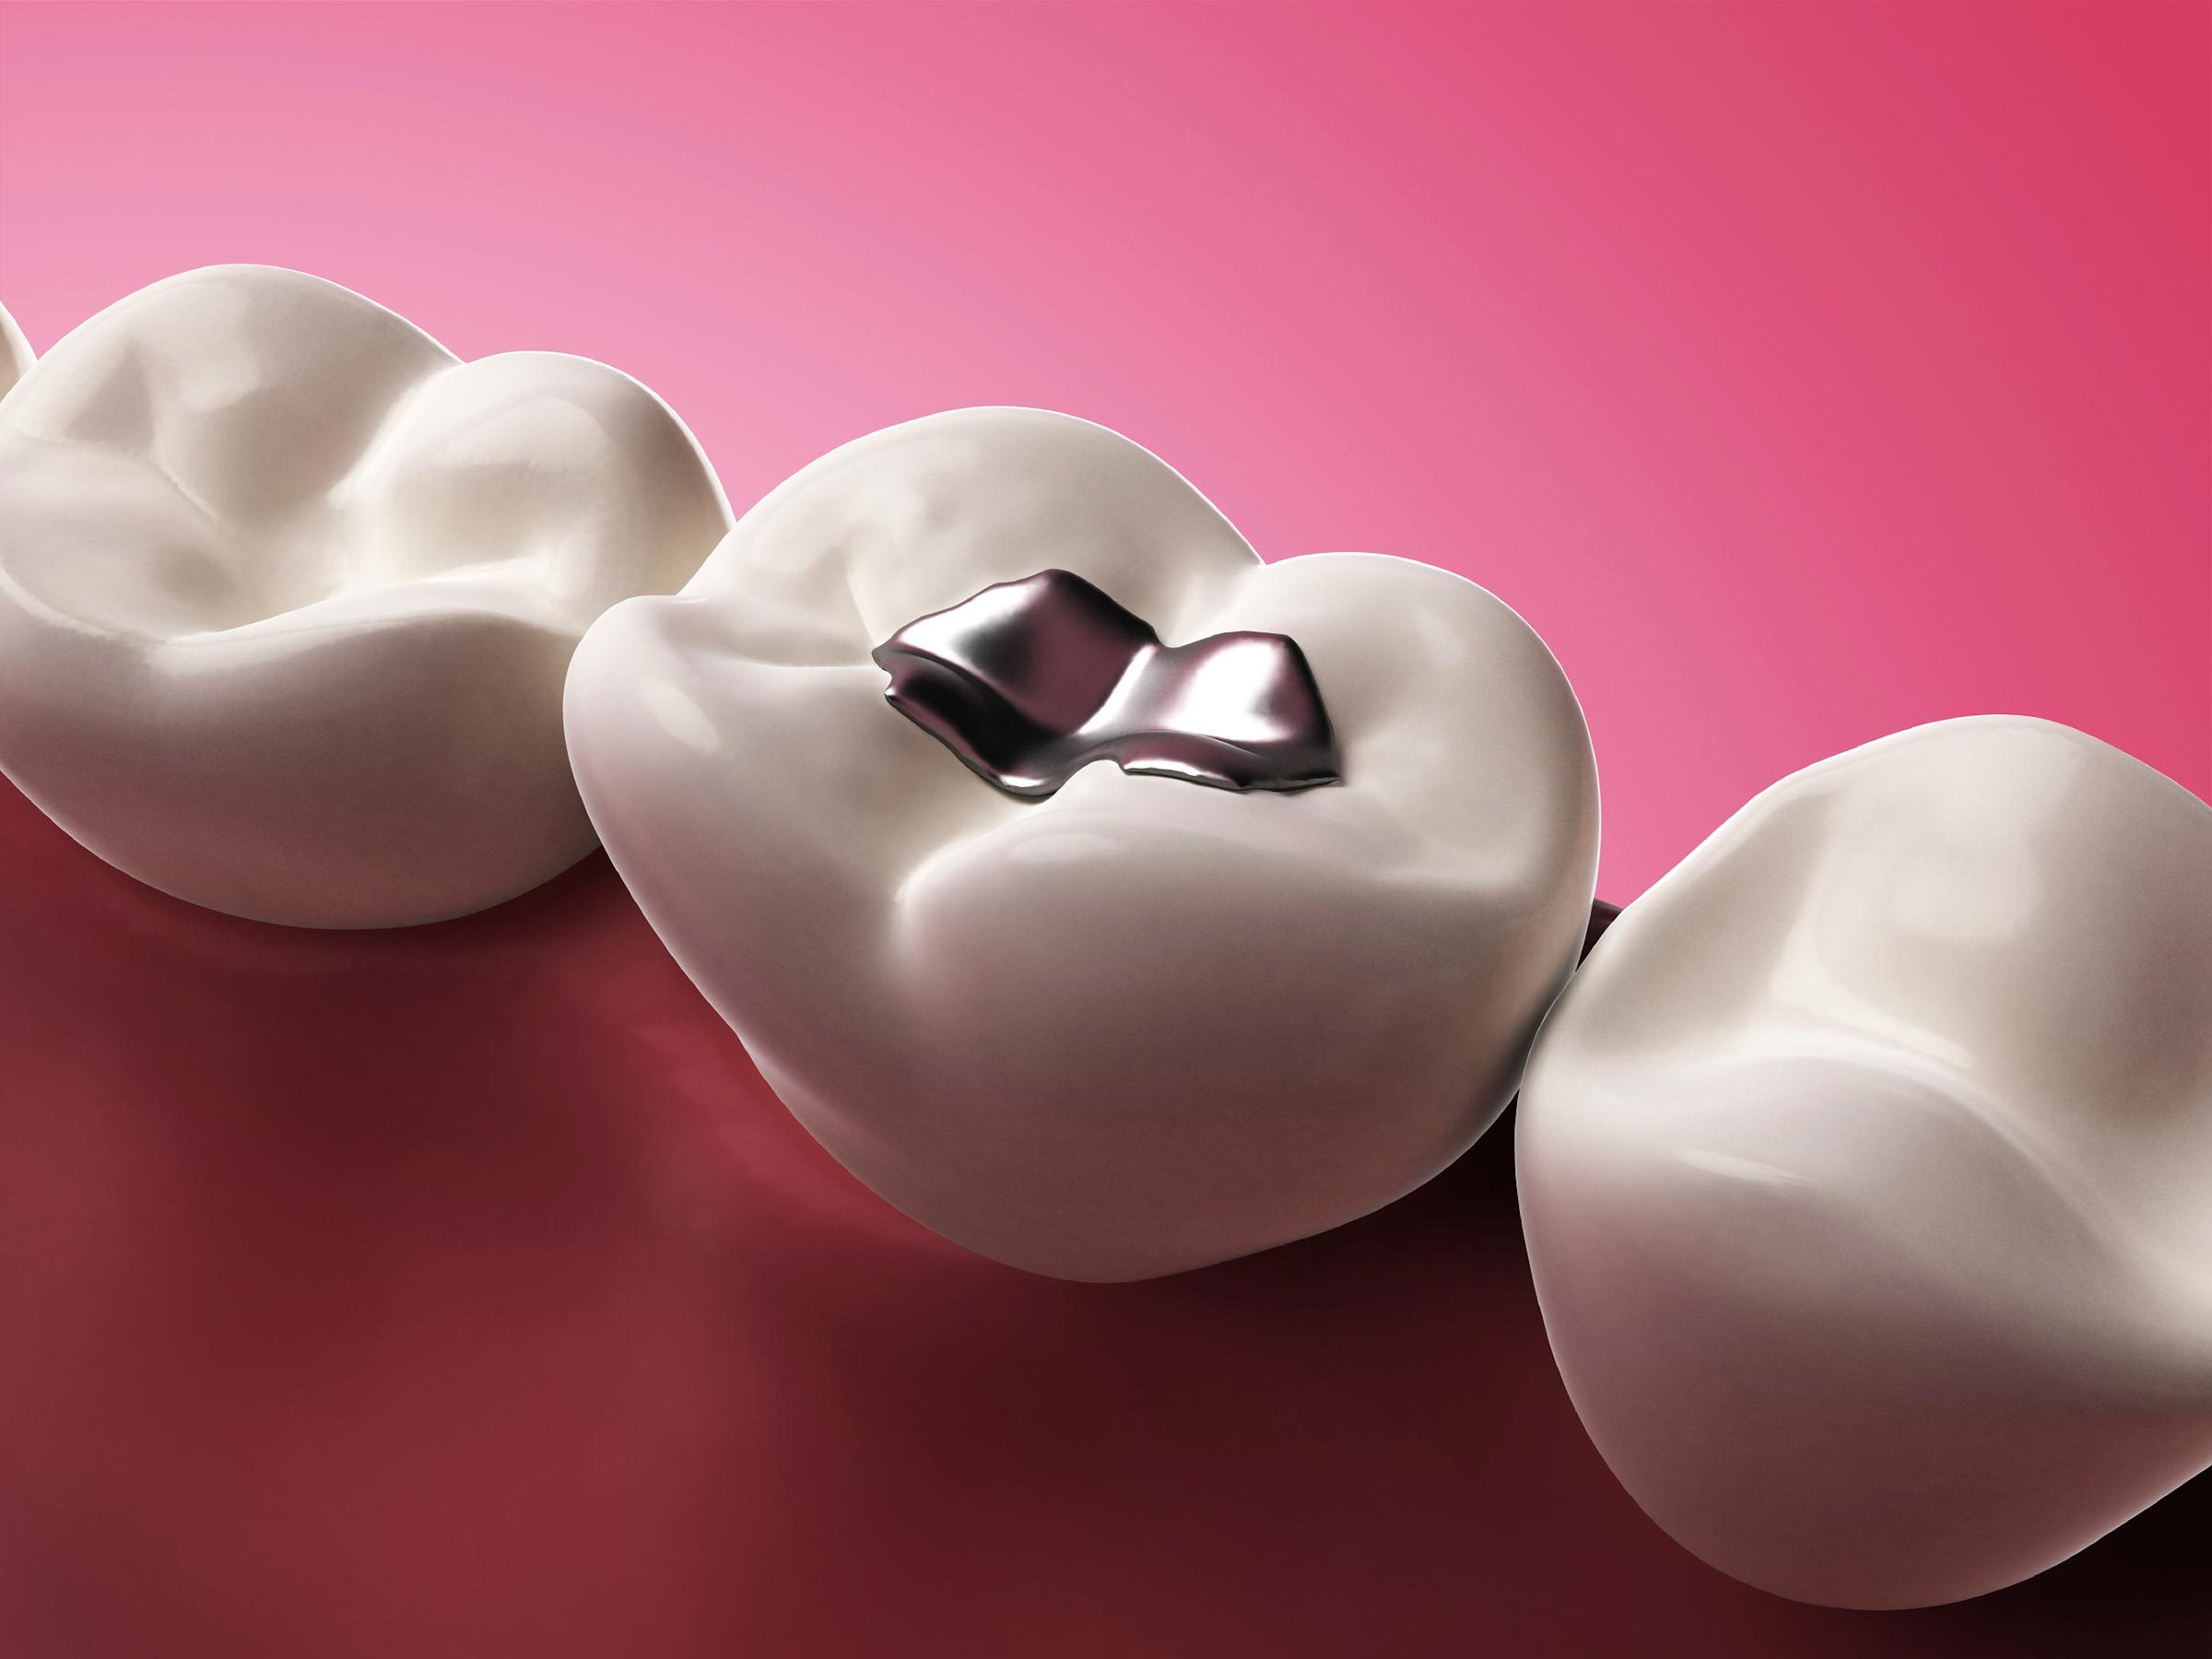 18. That may be real gold in your loved one's dental fillings or crowns,